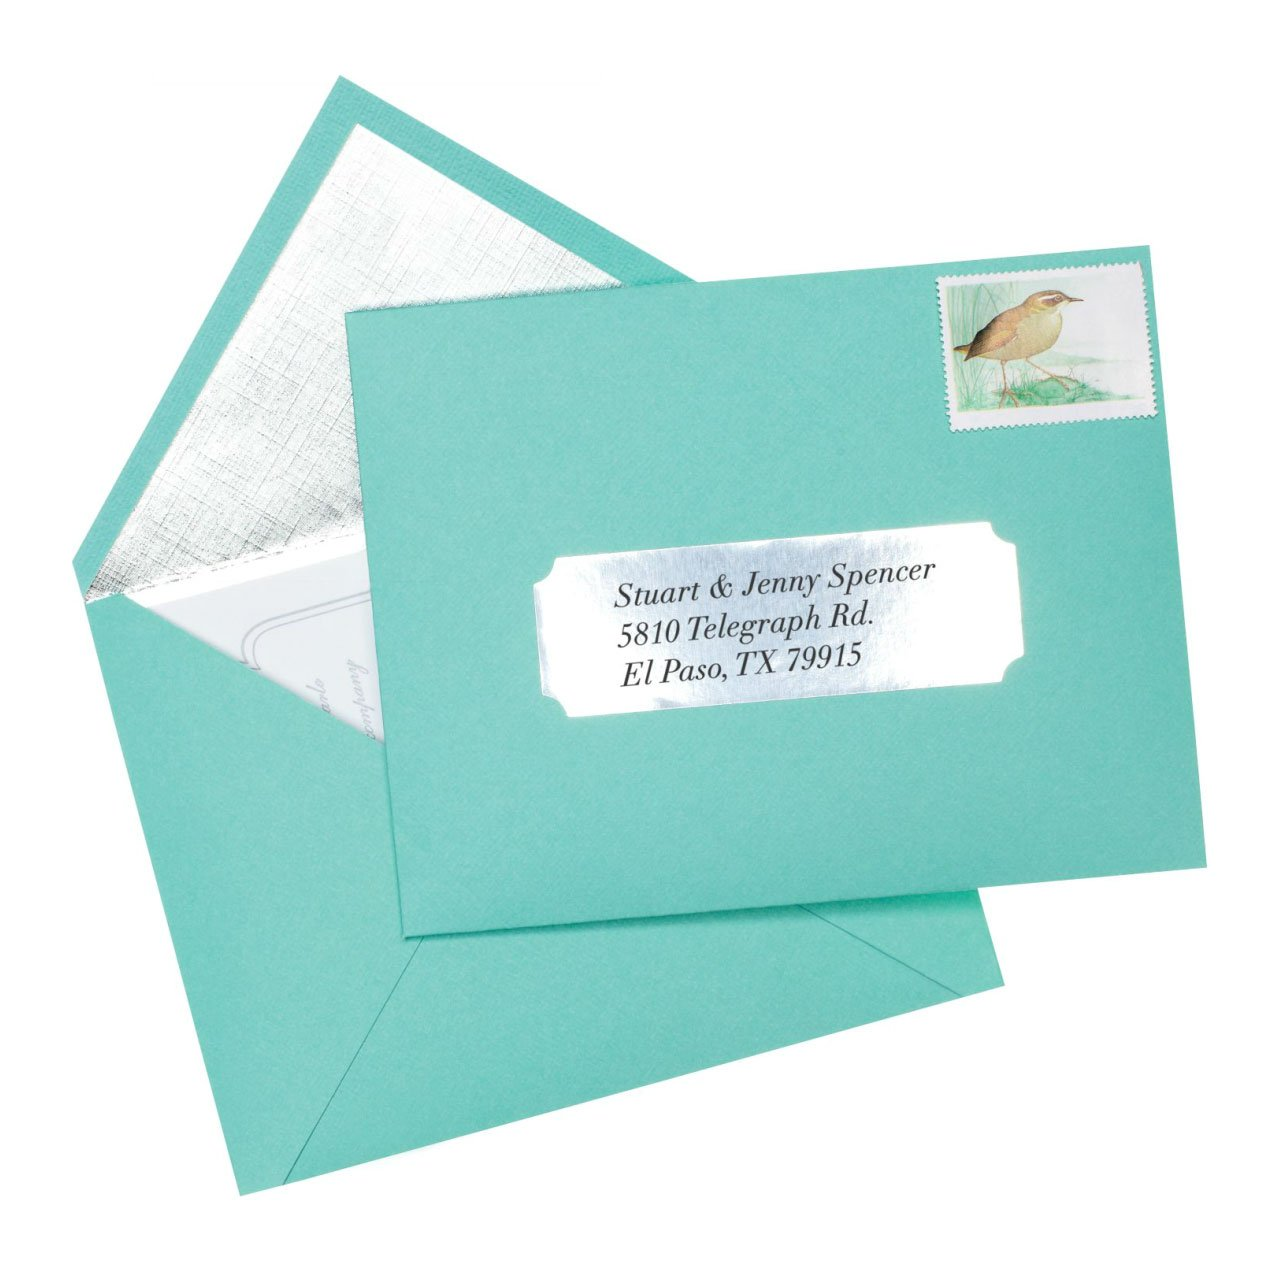 Spiral Binding Coils 7mm 9//32 x 36-inch PMS 3282 C pk of 100 4:1 Teal